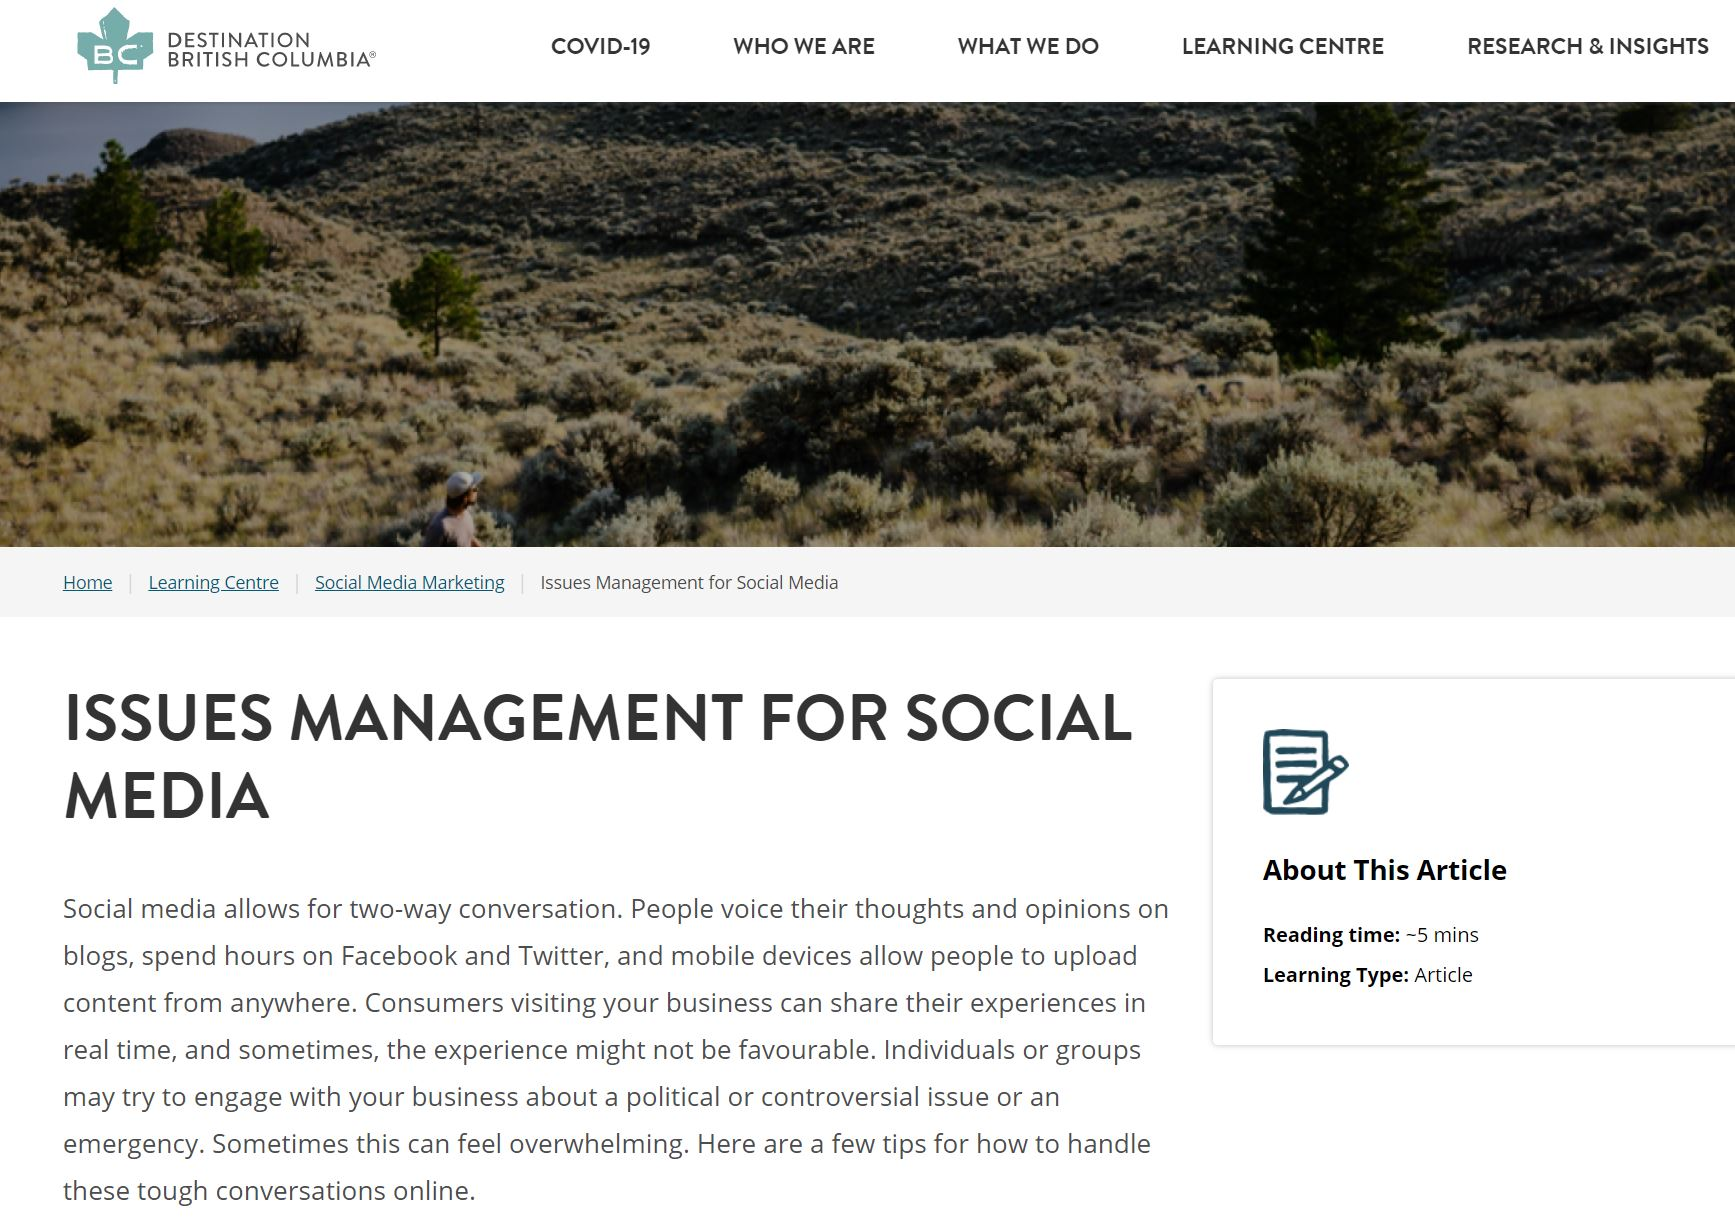 Issues Management for Social Media